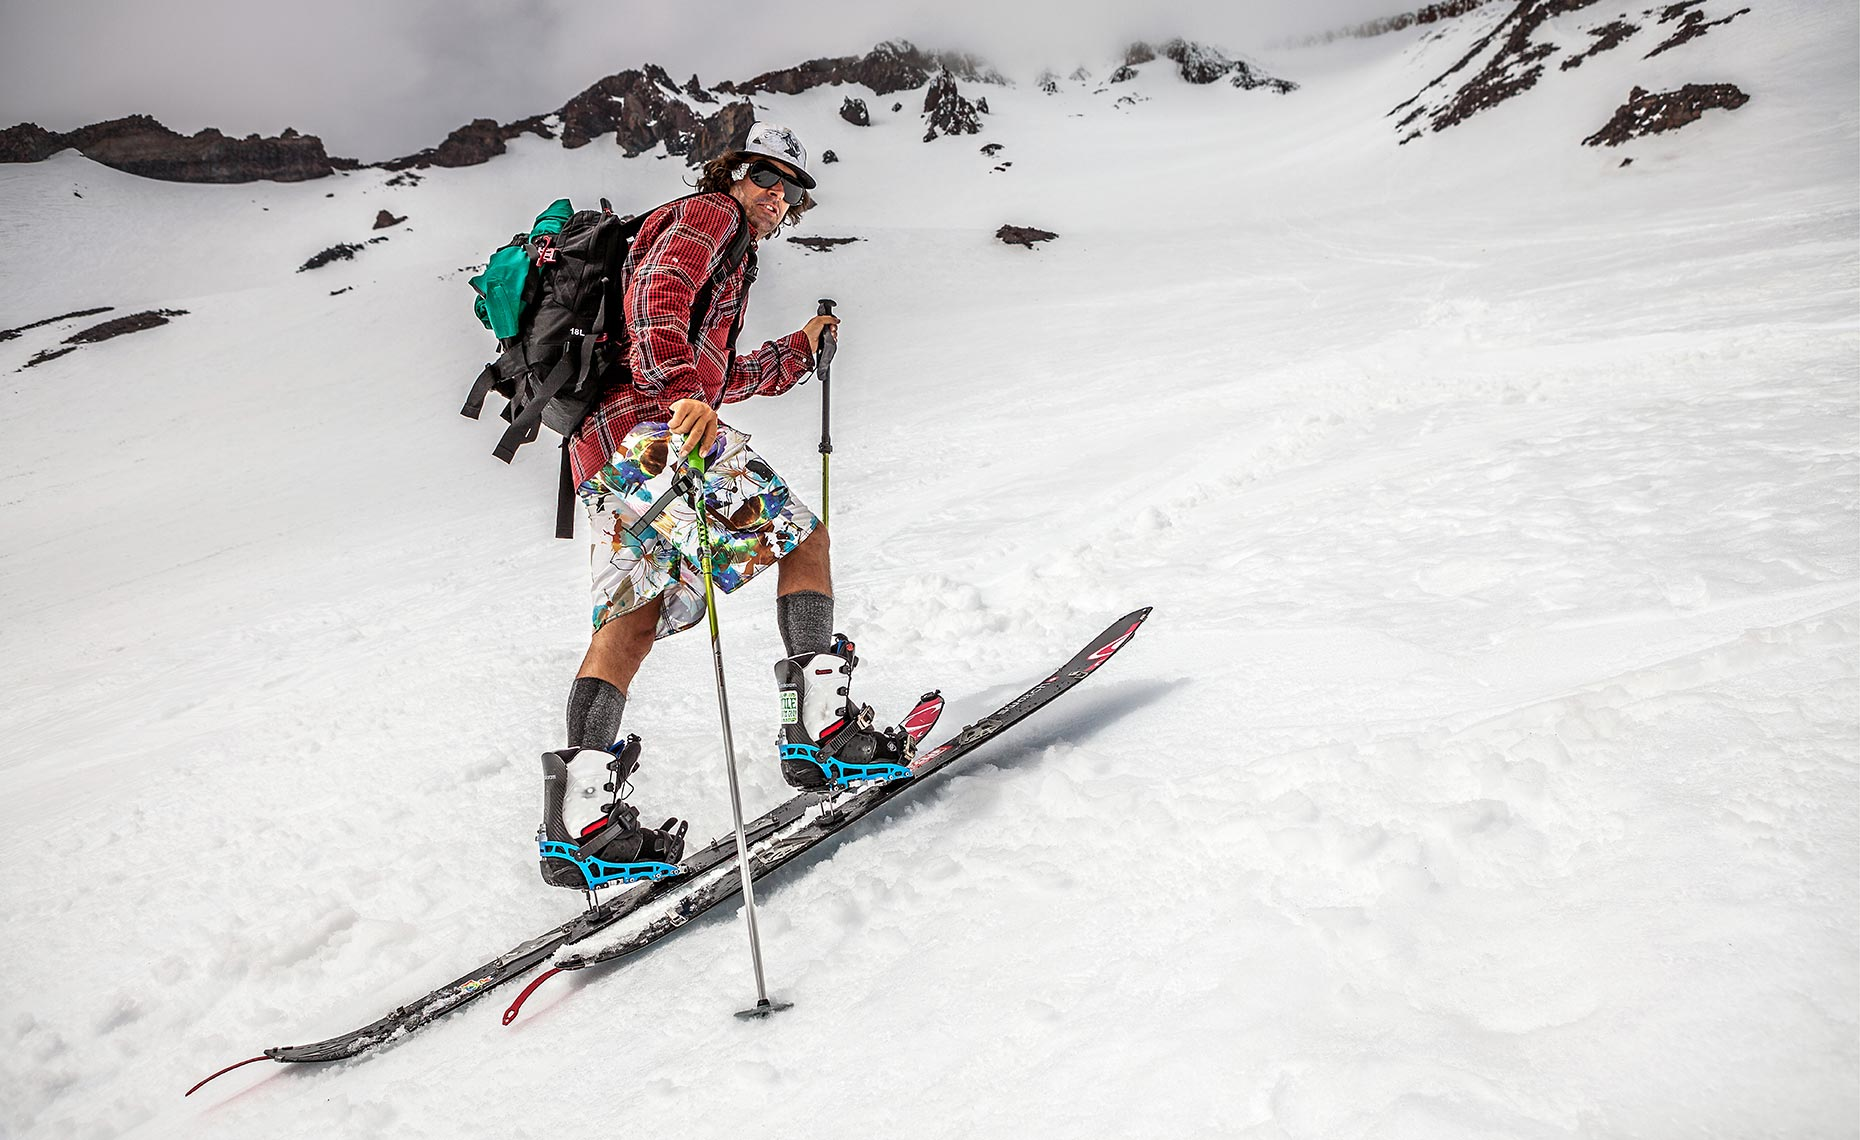 22_Jeremy_Jones_Mt_Shasta_Further_Shred_Lightly_Portrait_Lifestyle_Chris_Wellhausen_Photography.JPG